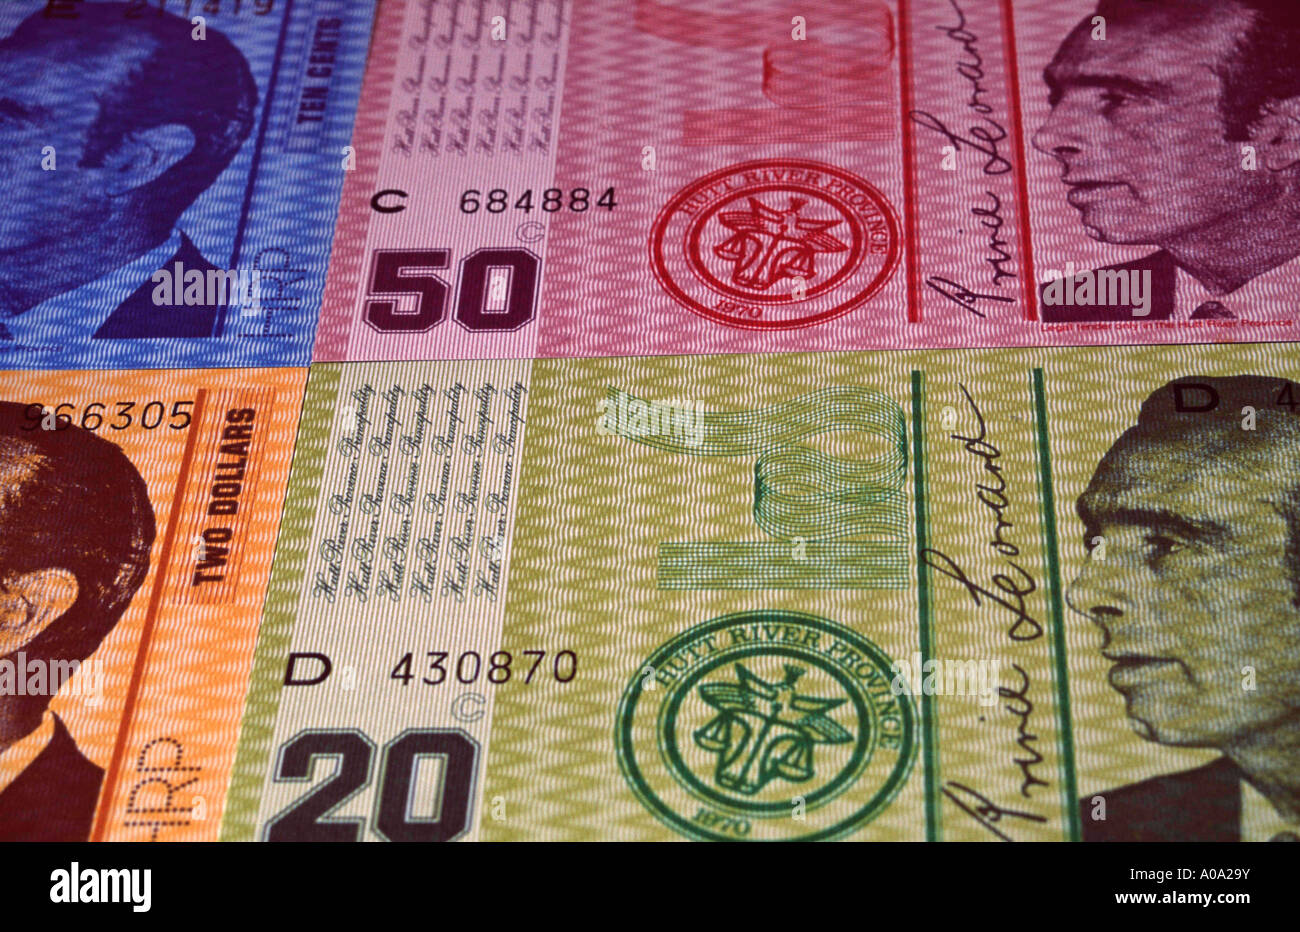 currency of Principality of Hutt River, a self-declared microstate in Western Australia Stock Photo